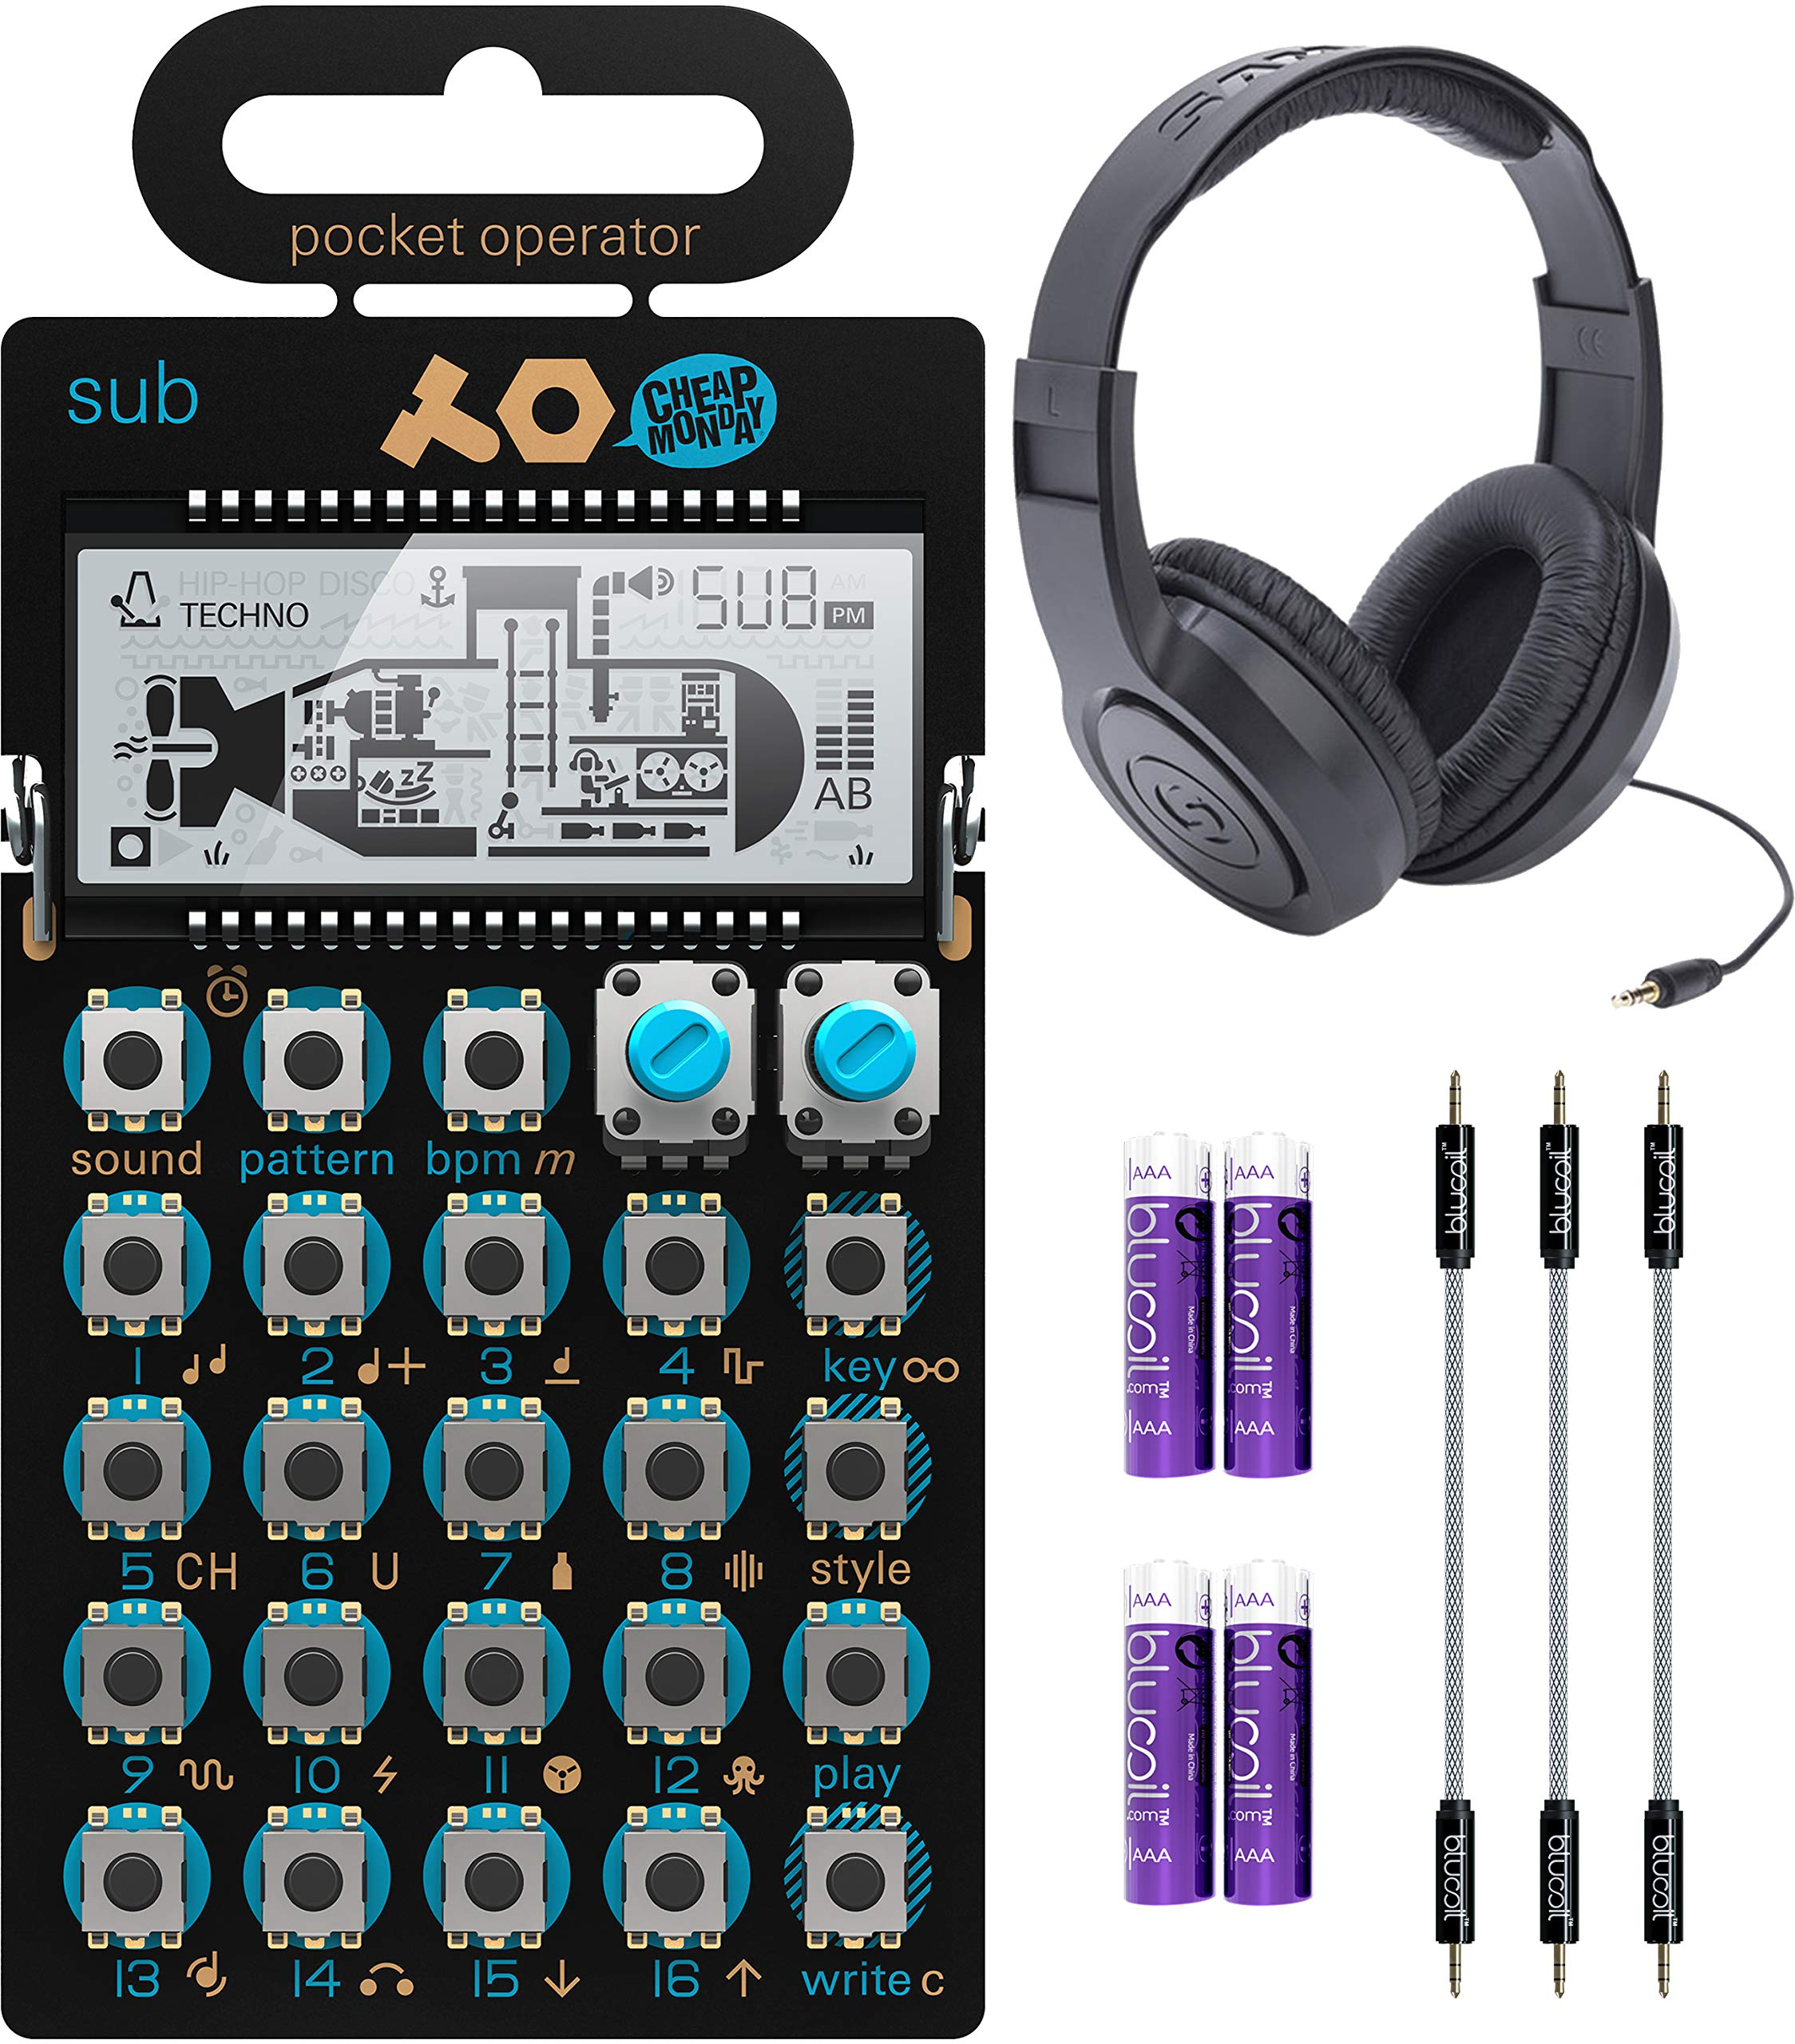 Teenage Engineering PO-14 Pocket Operator Sub Bass Synthesizer Bundle with Samson SR350 Over-Ear Closed-Back Headphones, Blucoil 3-Pack of 7'' Audio Aux Cables, and 4 AAA Batteries by blucoil